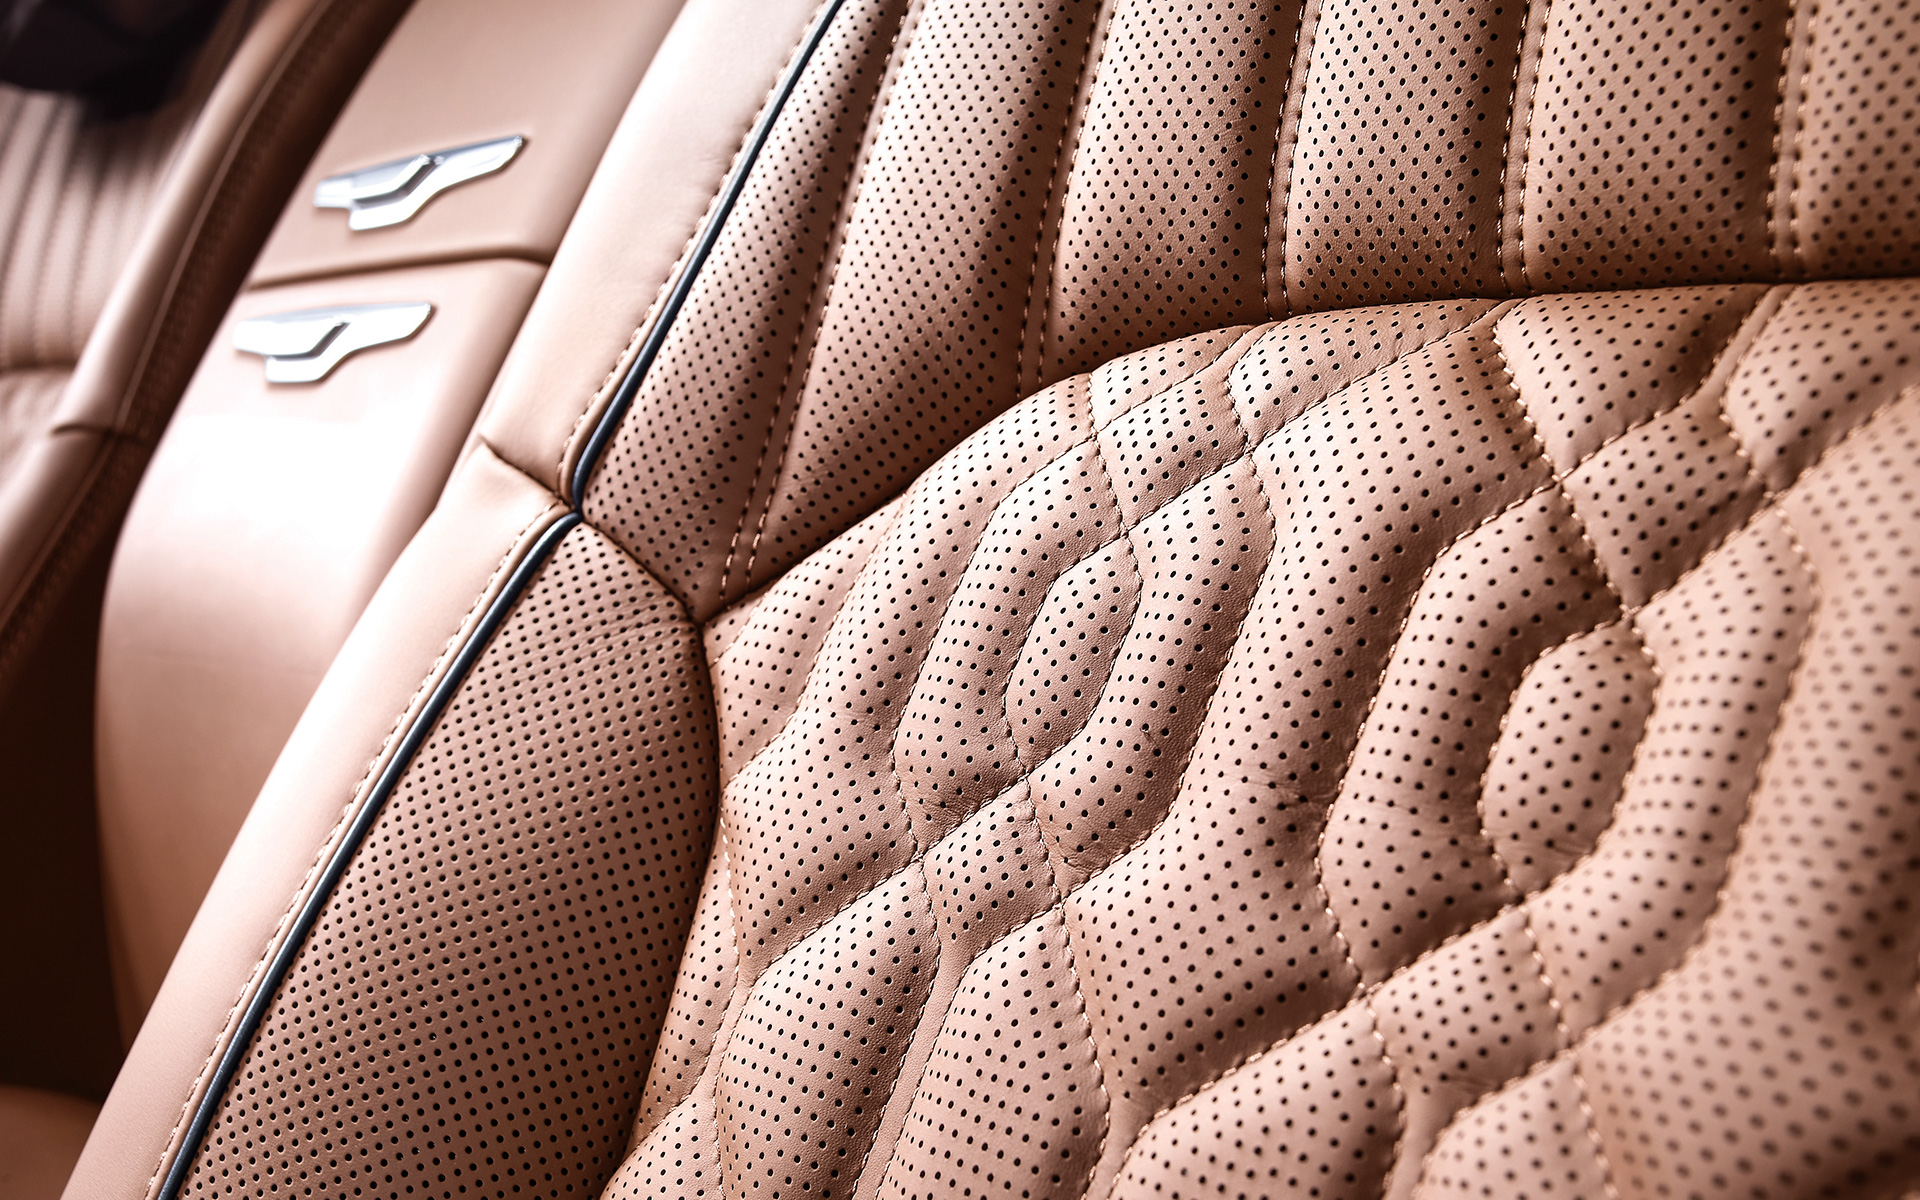 genesis-g90-features-design-semi-aniline-leather-seat-layer.jpg